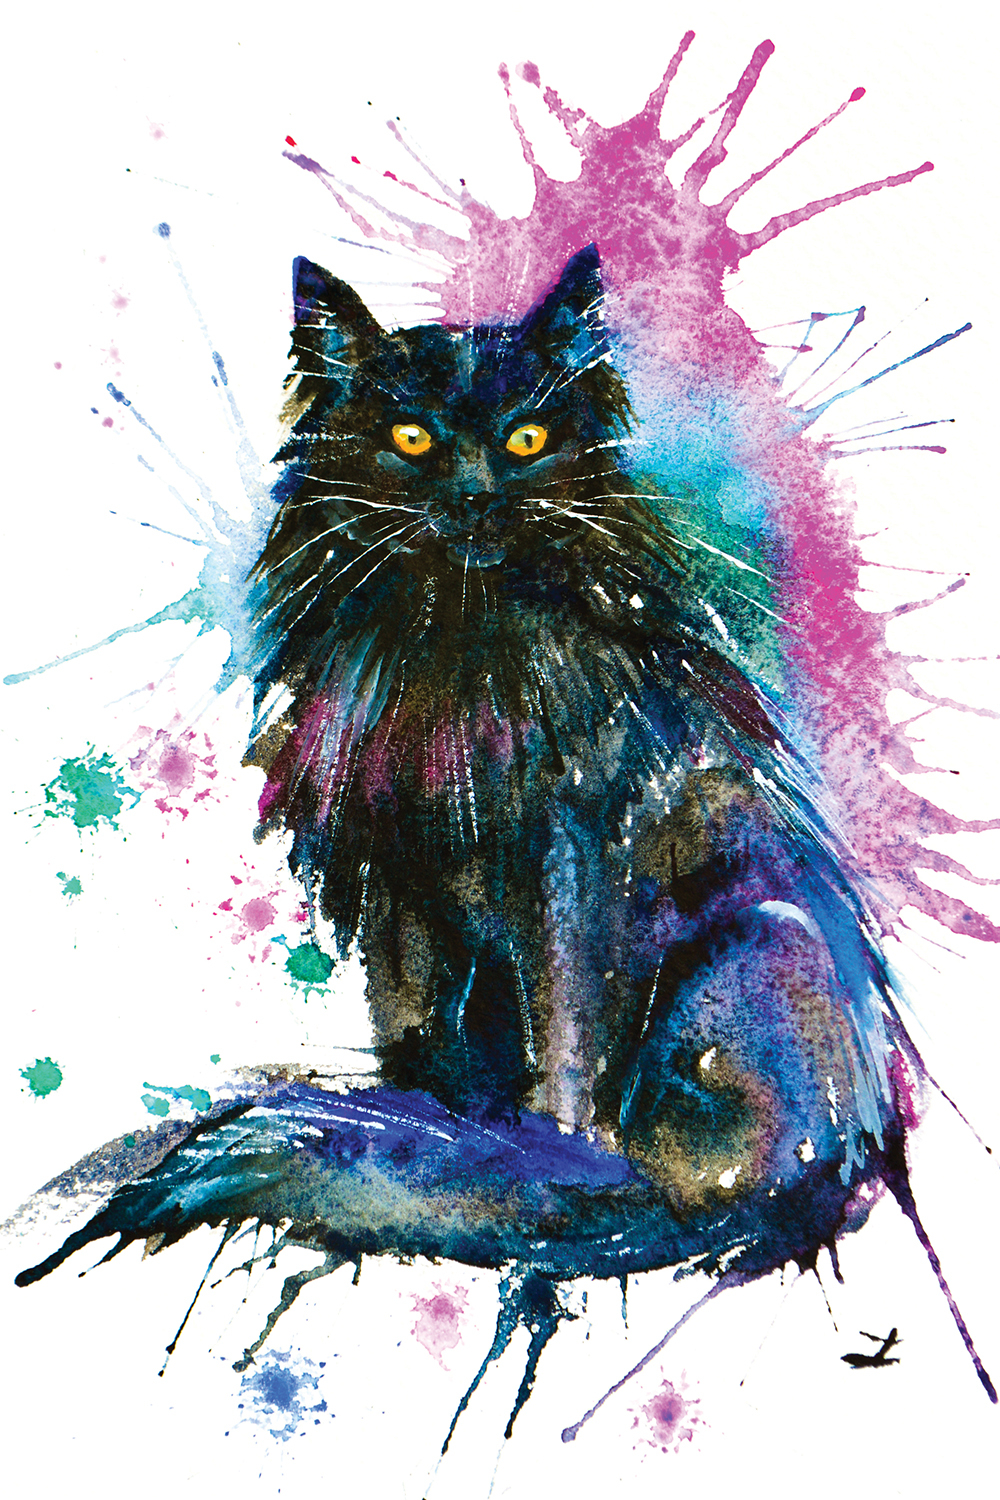 black cat watercolor with pink, purple, and blue